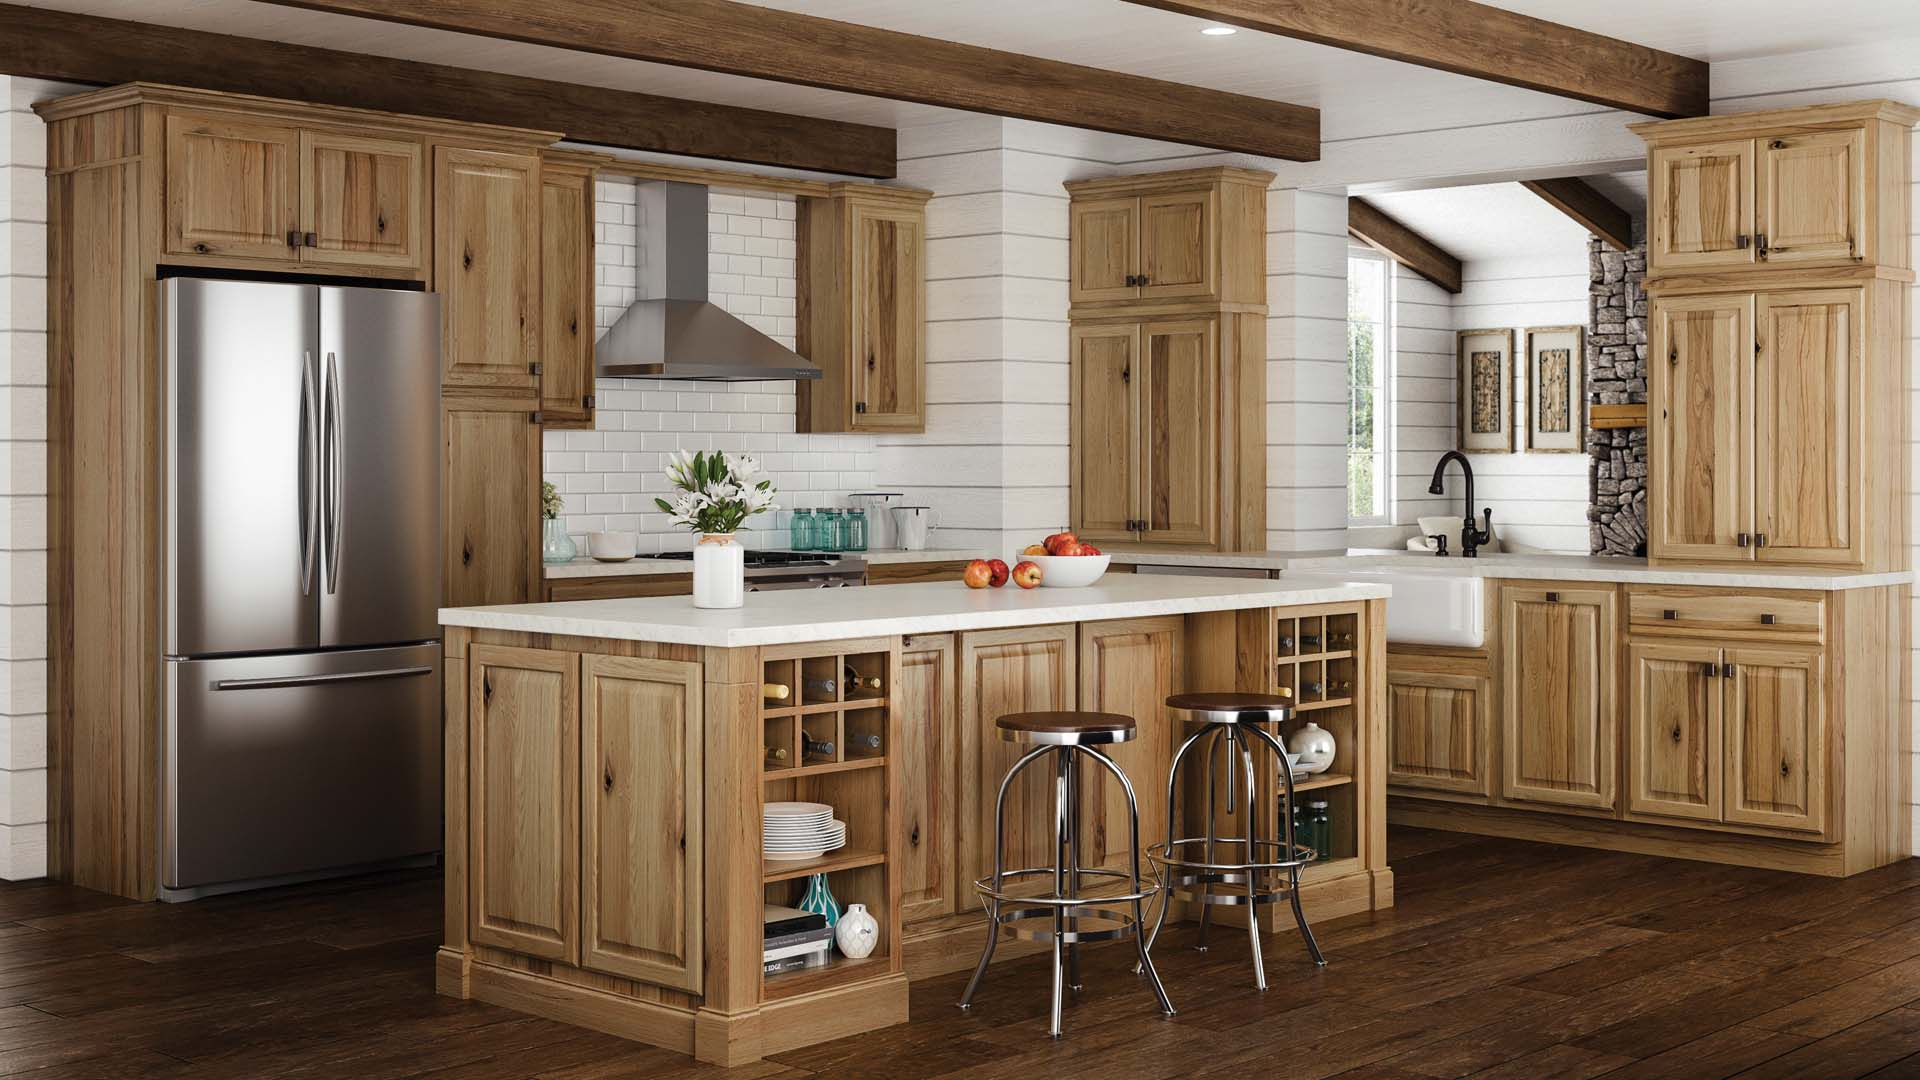 Best Kitchen Cabinets Company